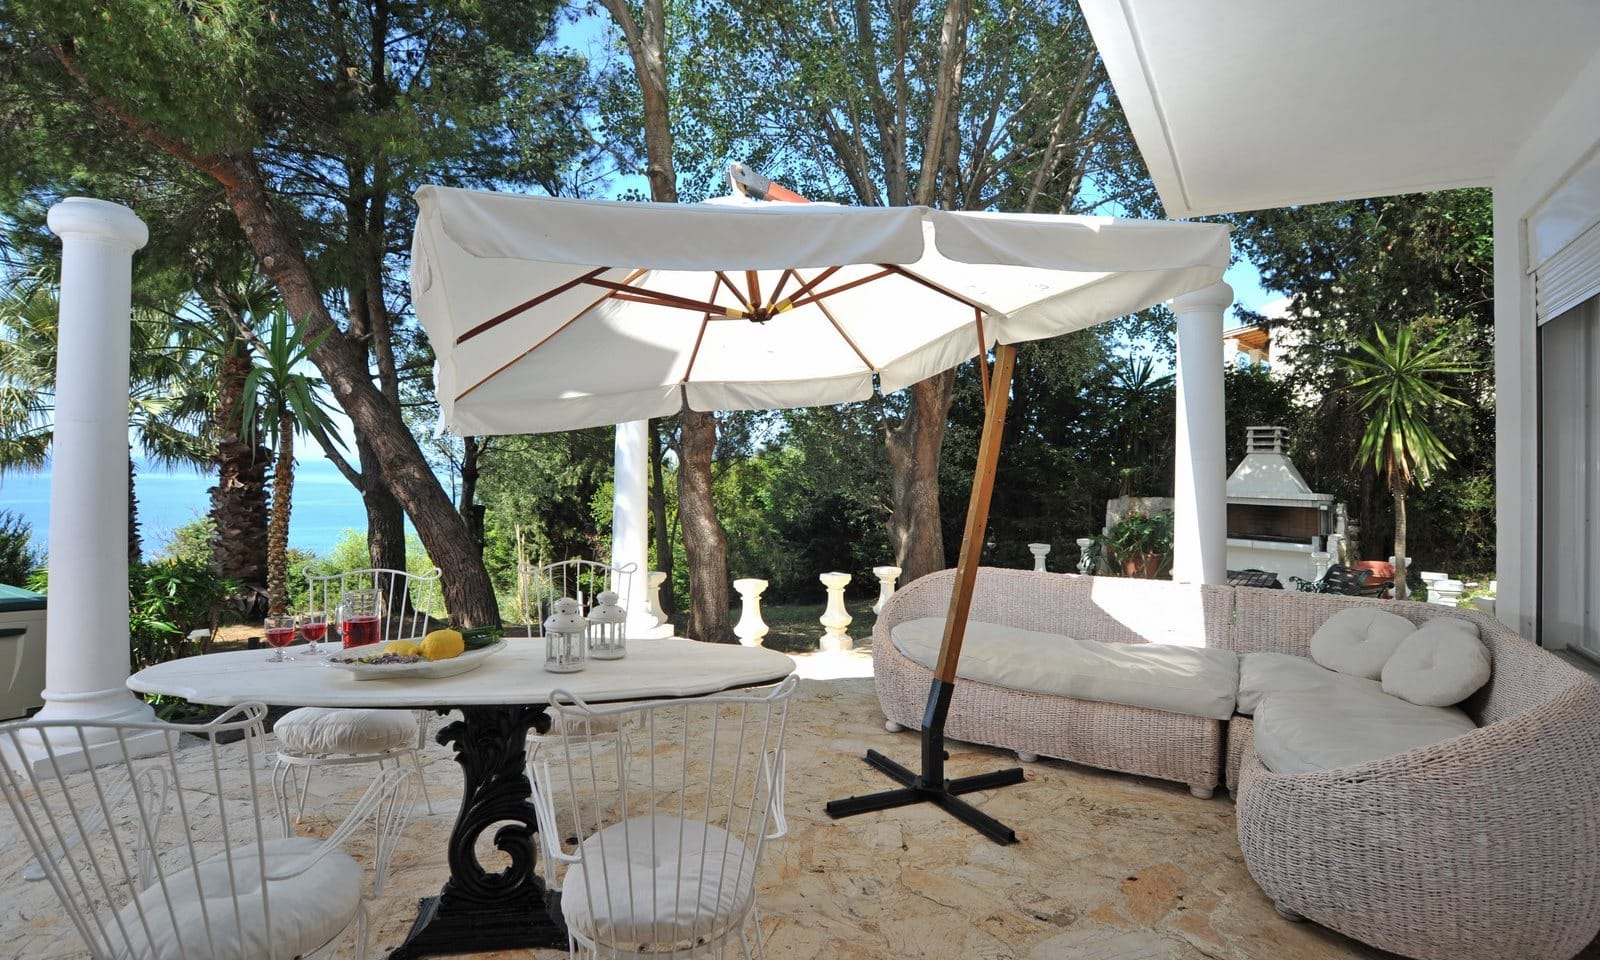 The best villas for sale in Corfu